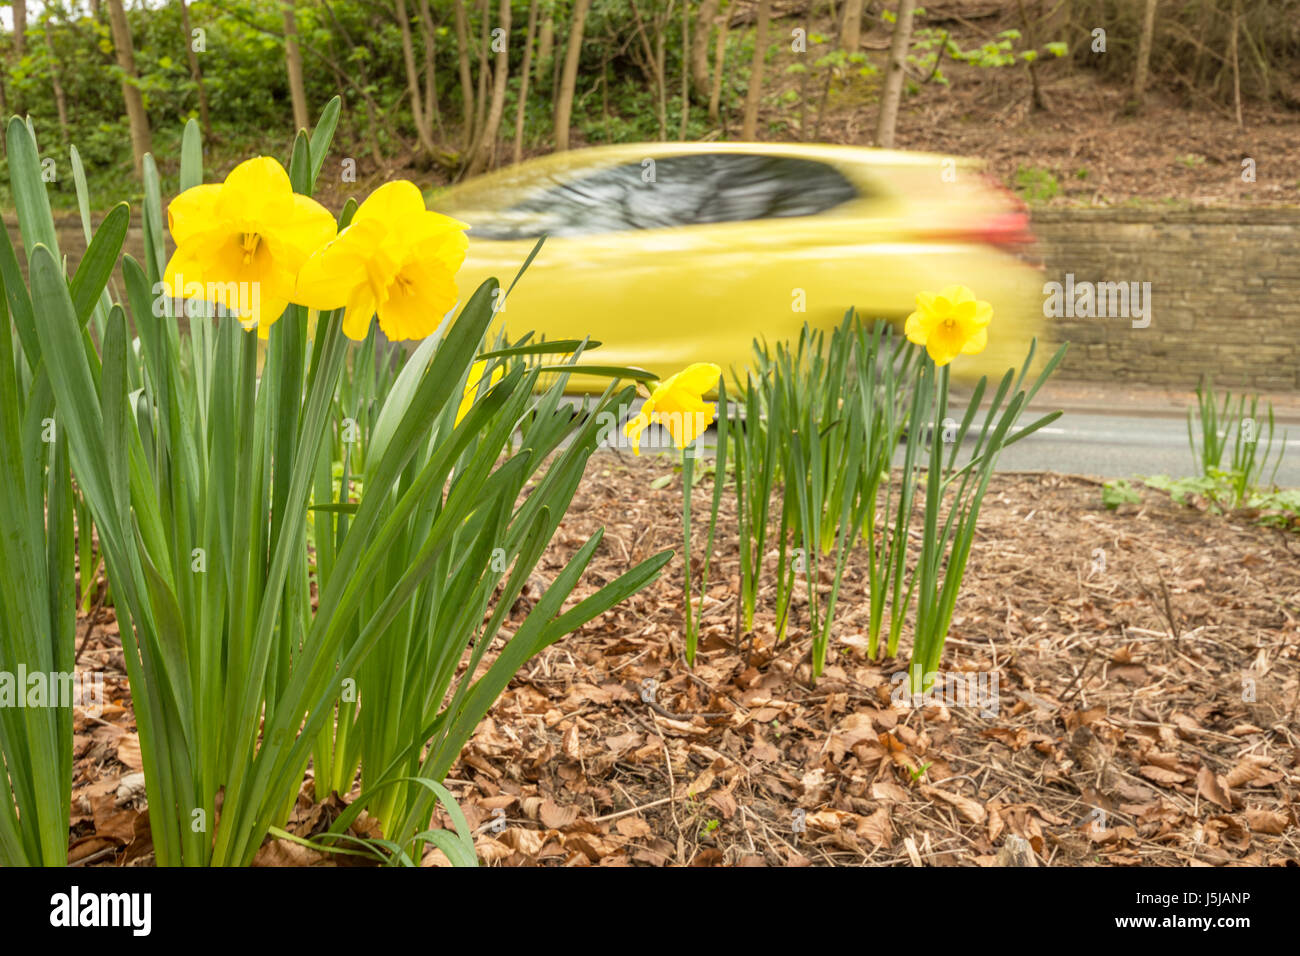 A yellow car driven fast and speeding - Stock Image